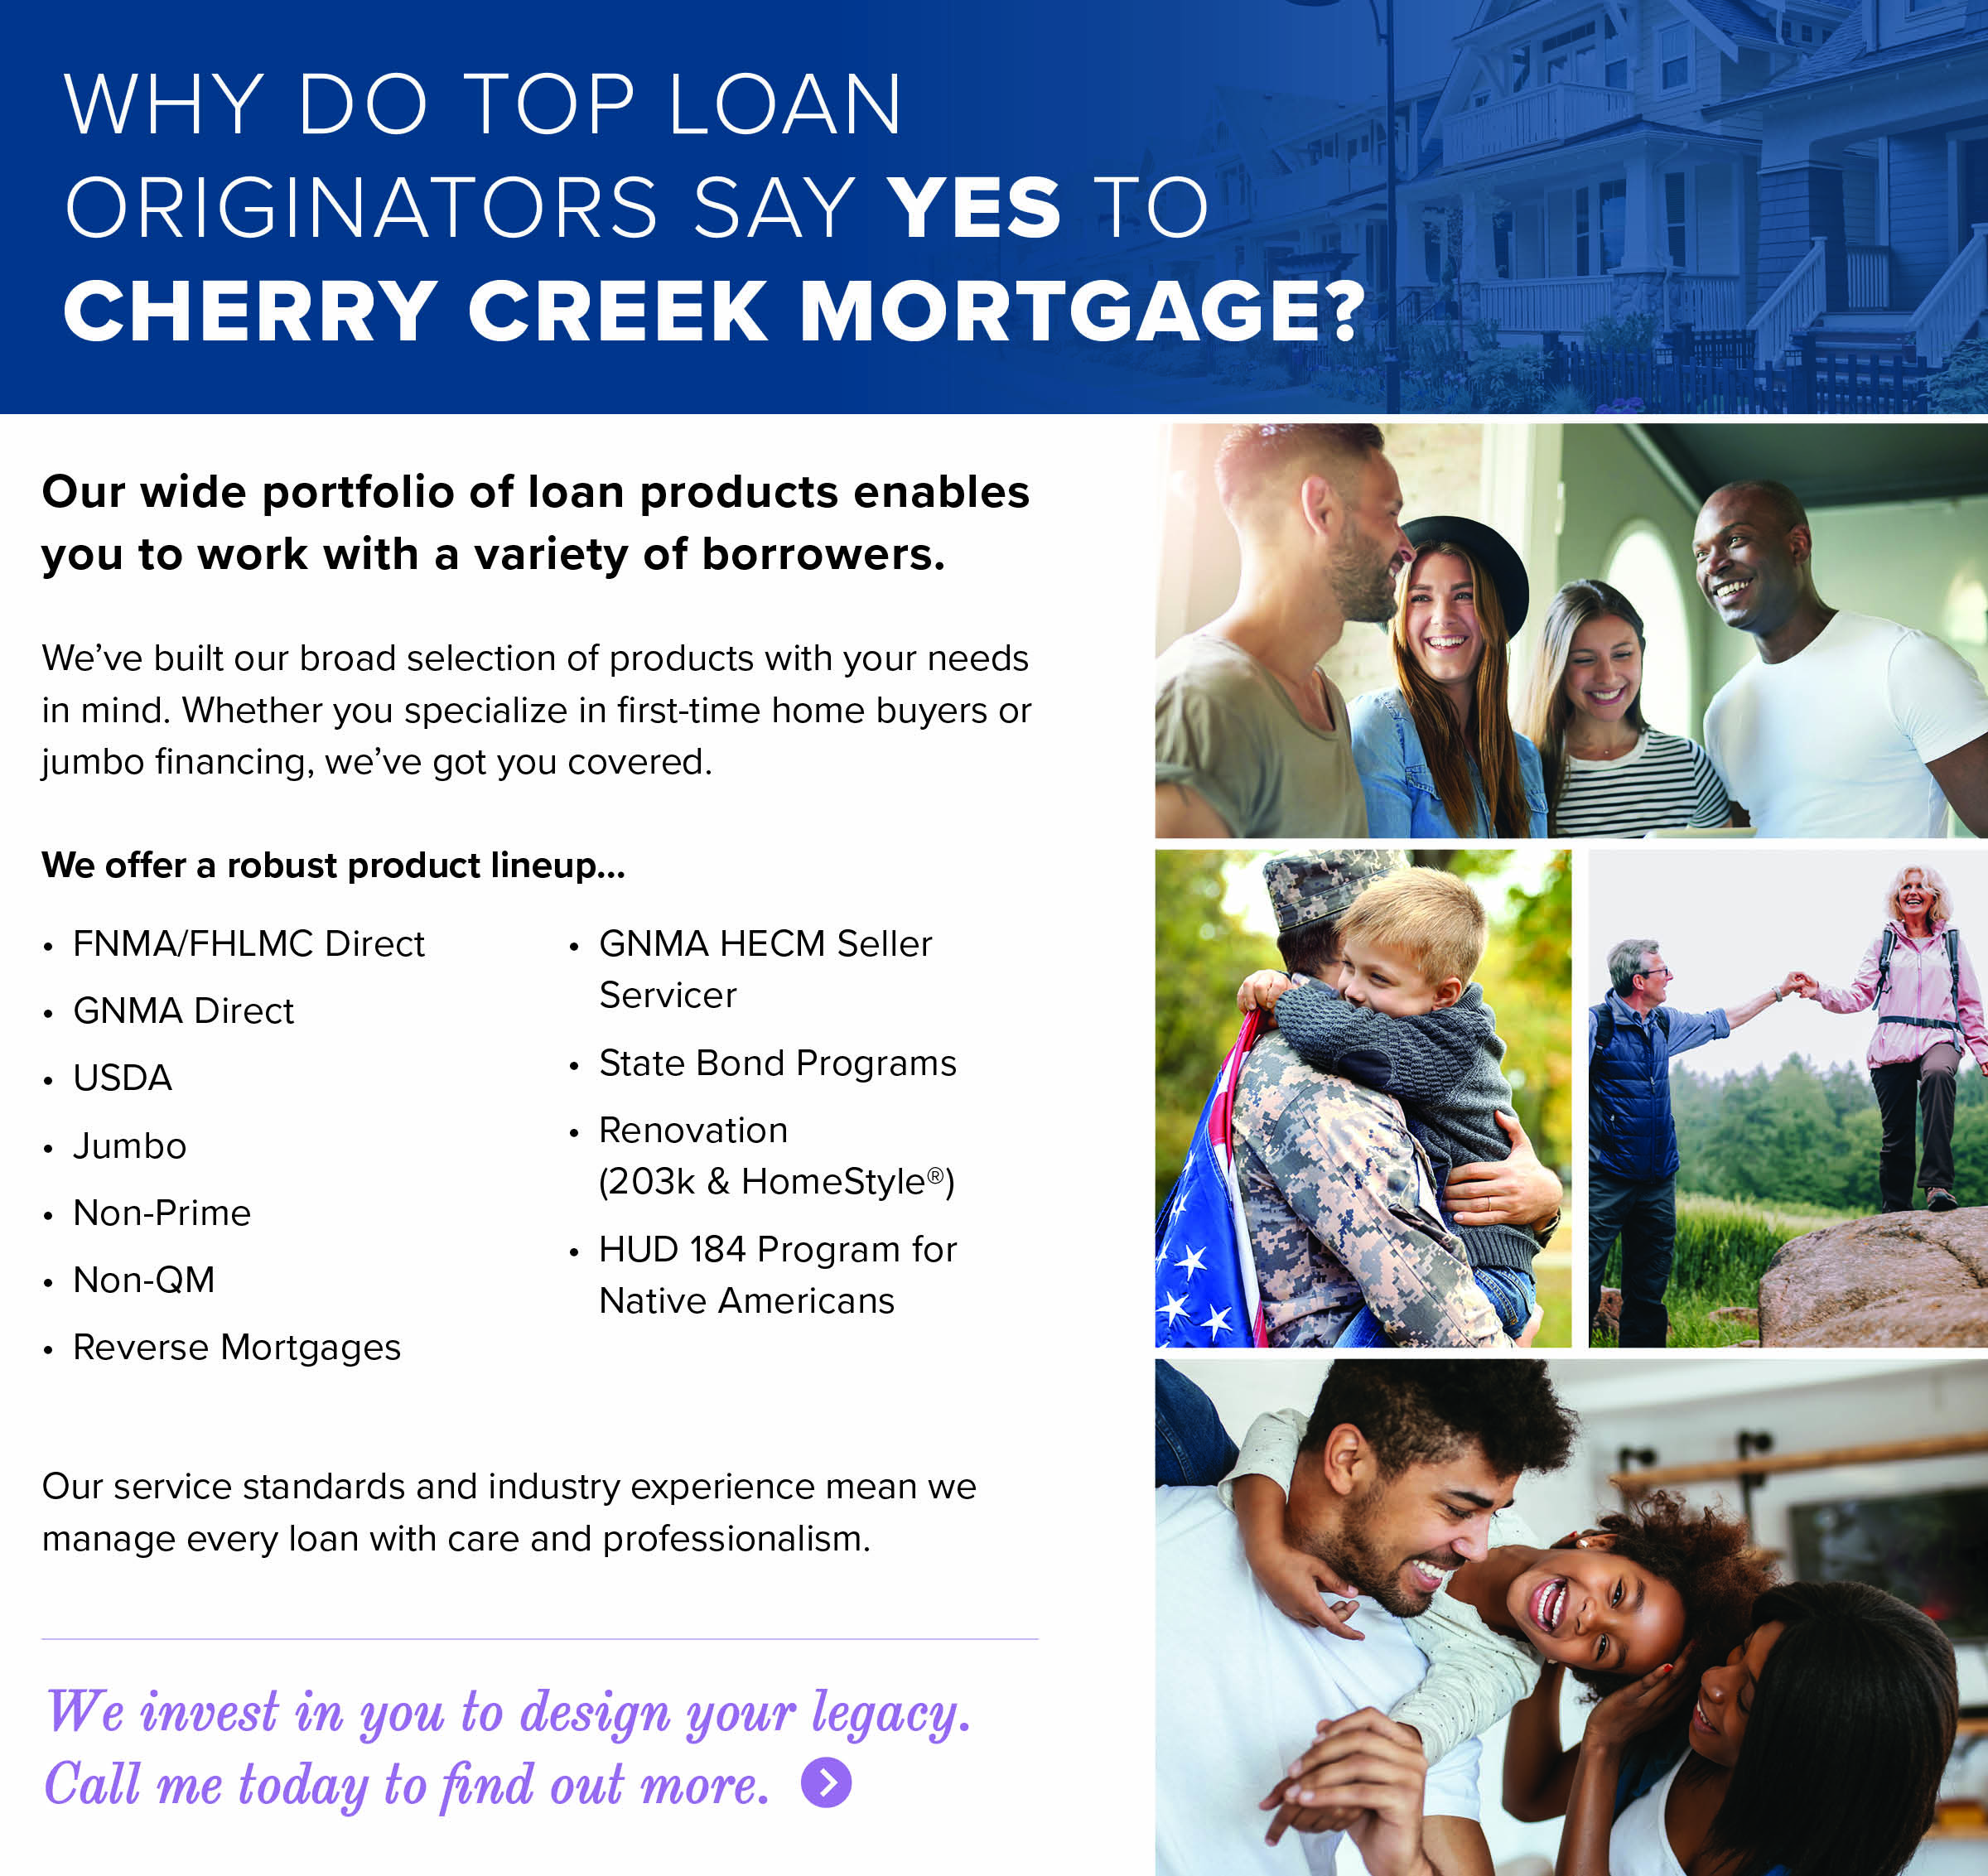 Recruiting - Yes to Cherry Creek Mortgage - OSI - Loan Products.jpg